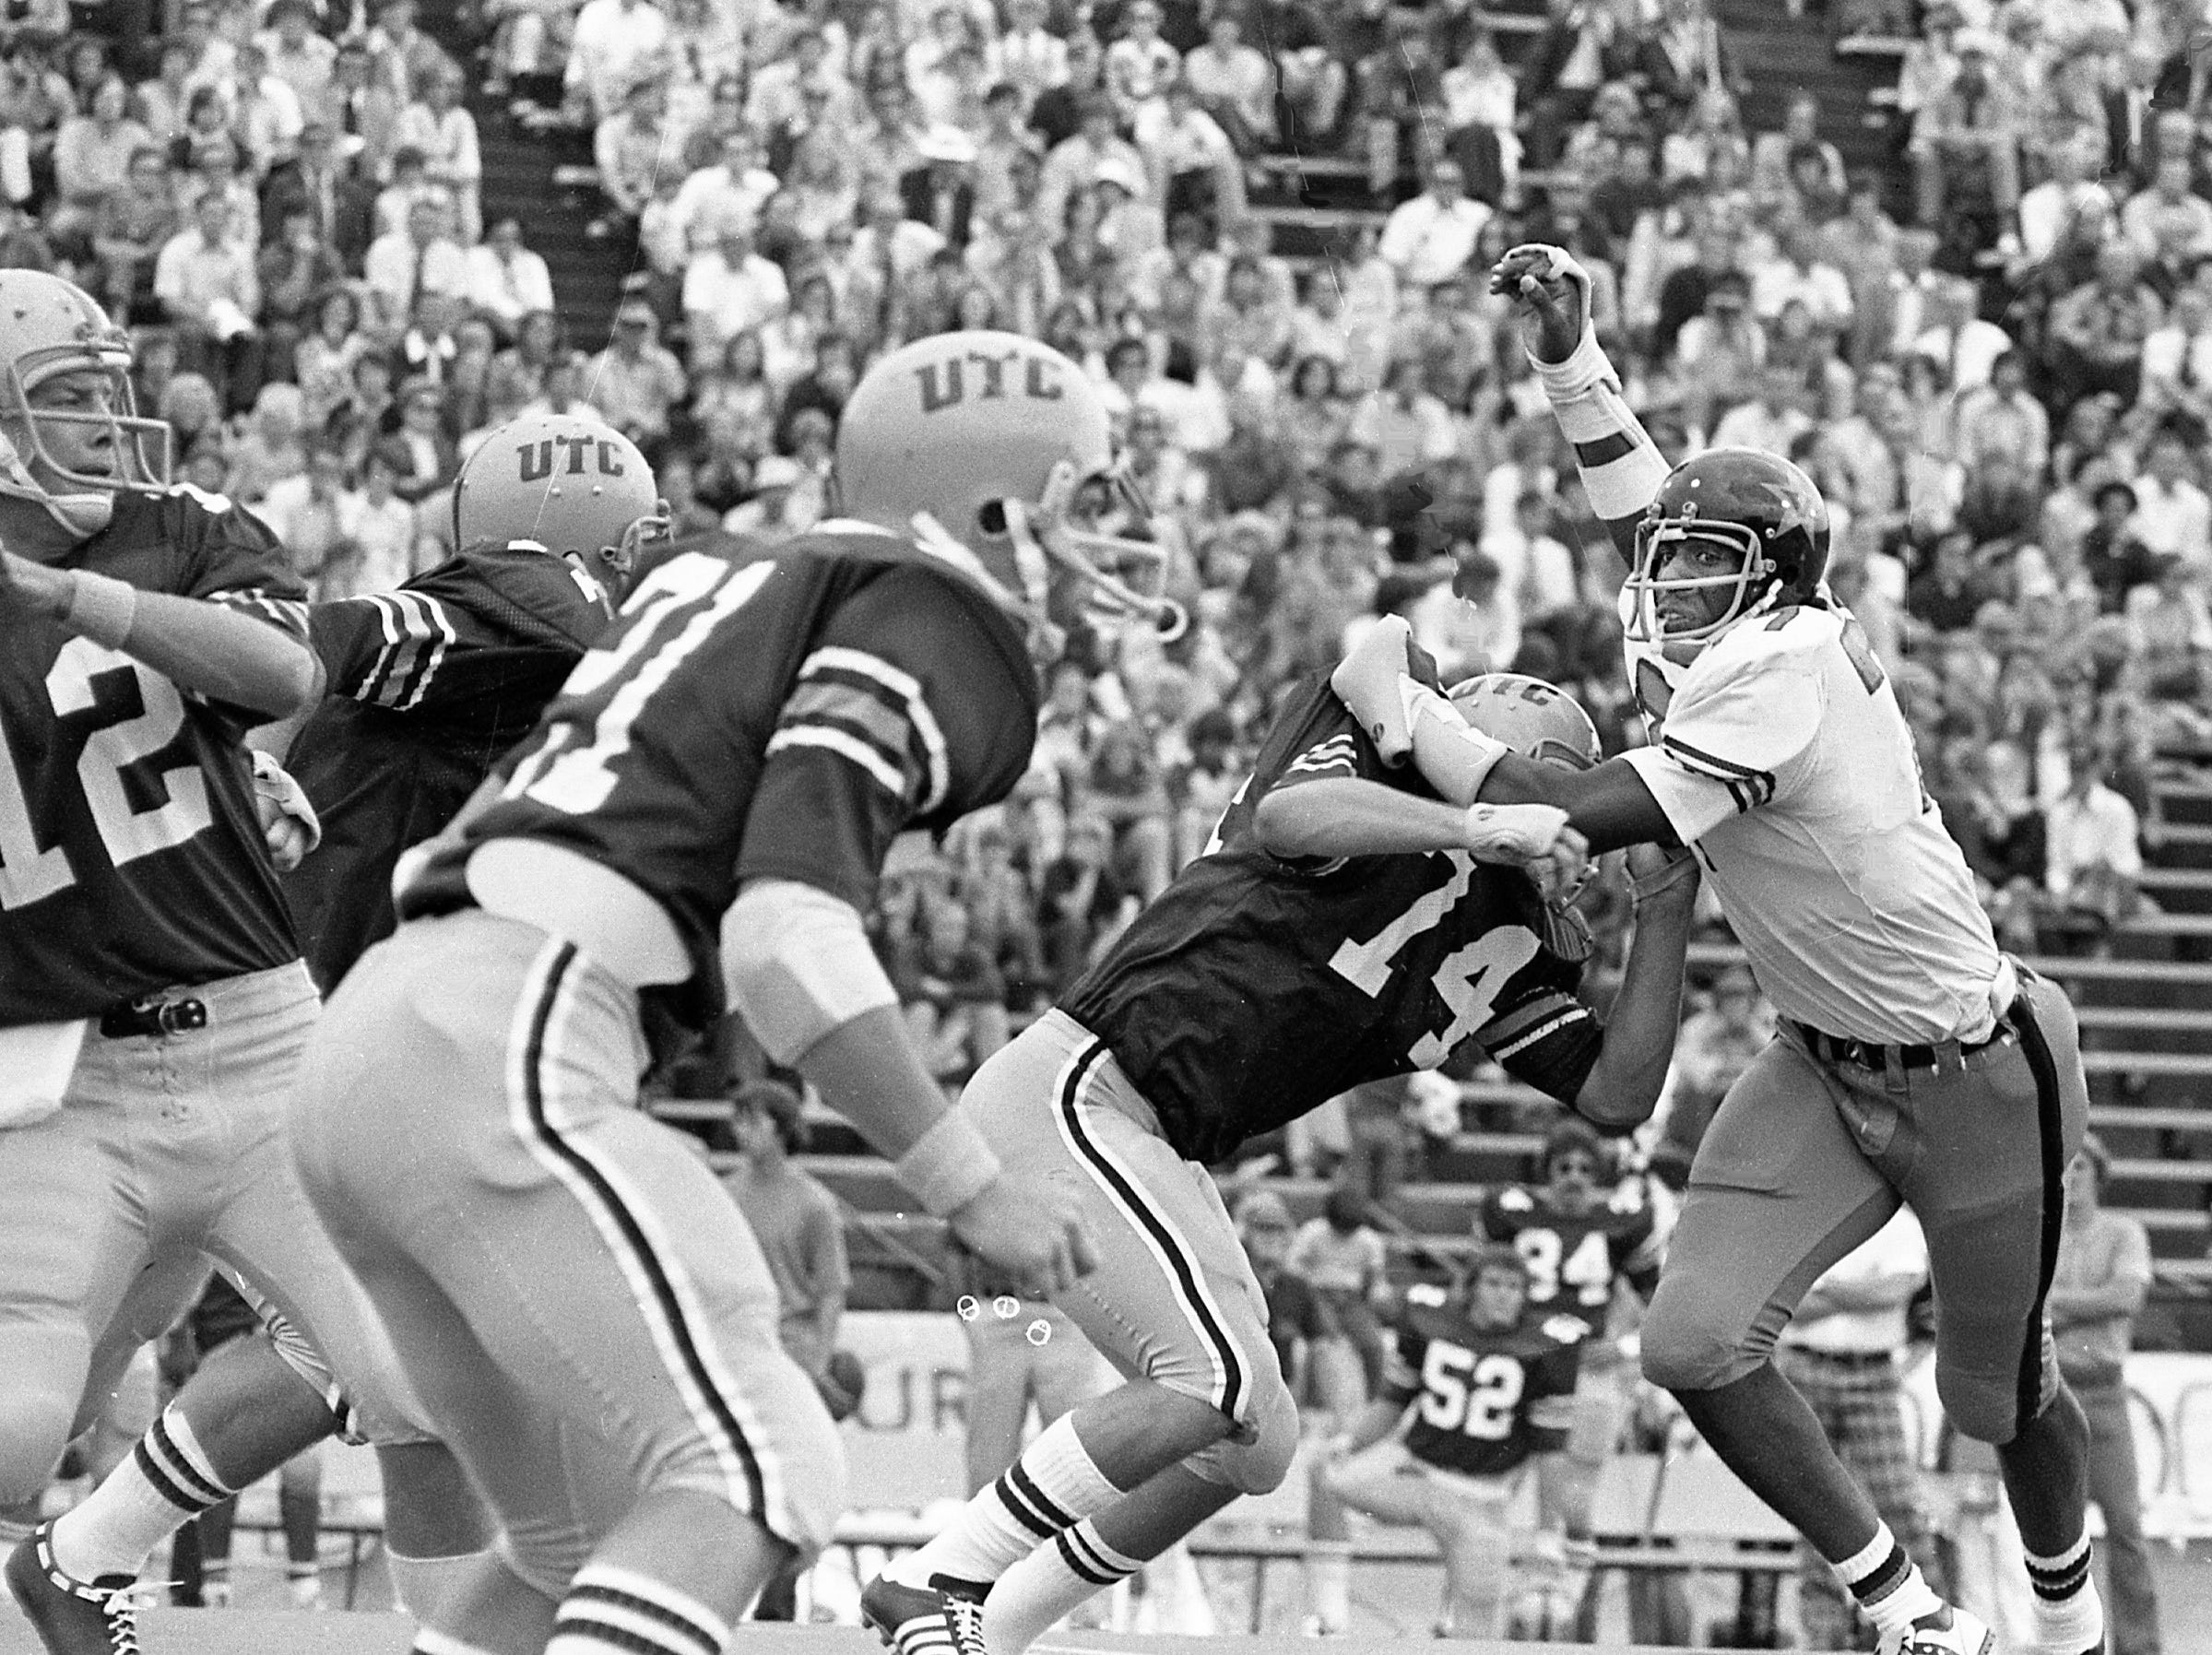 Vanderbilt defensive end Dennis Harrison (77) fights off a lineman from UT-Chattanooga in their opener at Dudley Field Sept. 14, 1974.